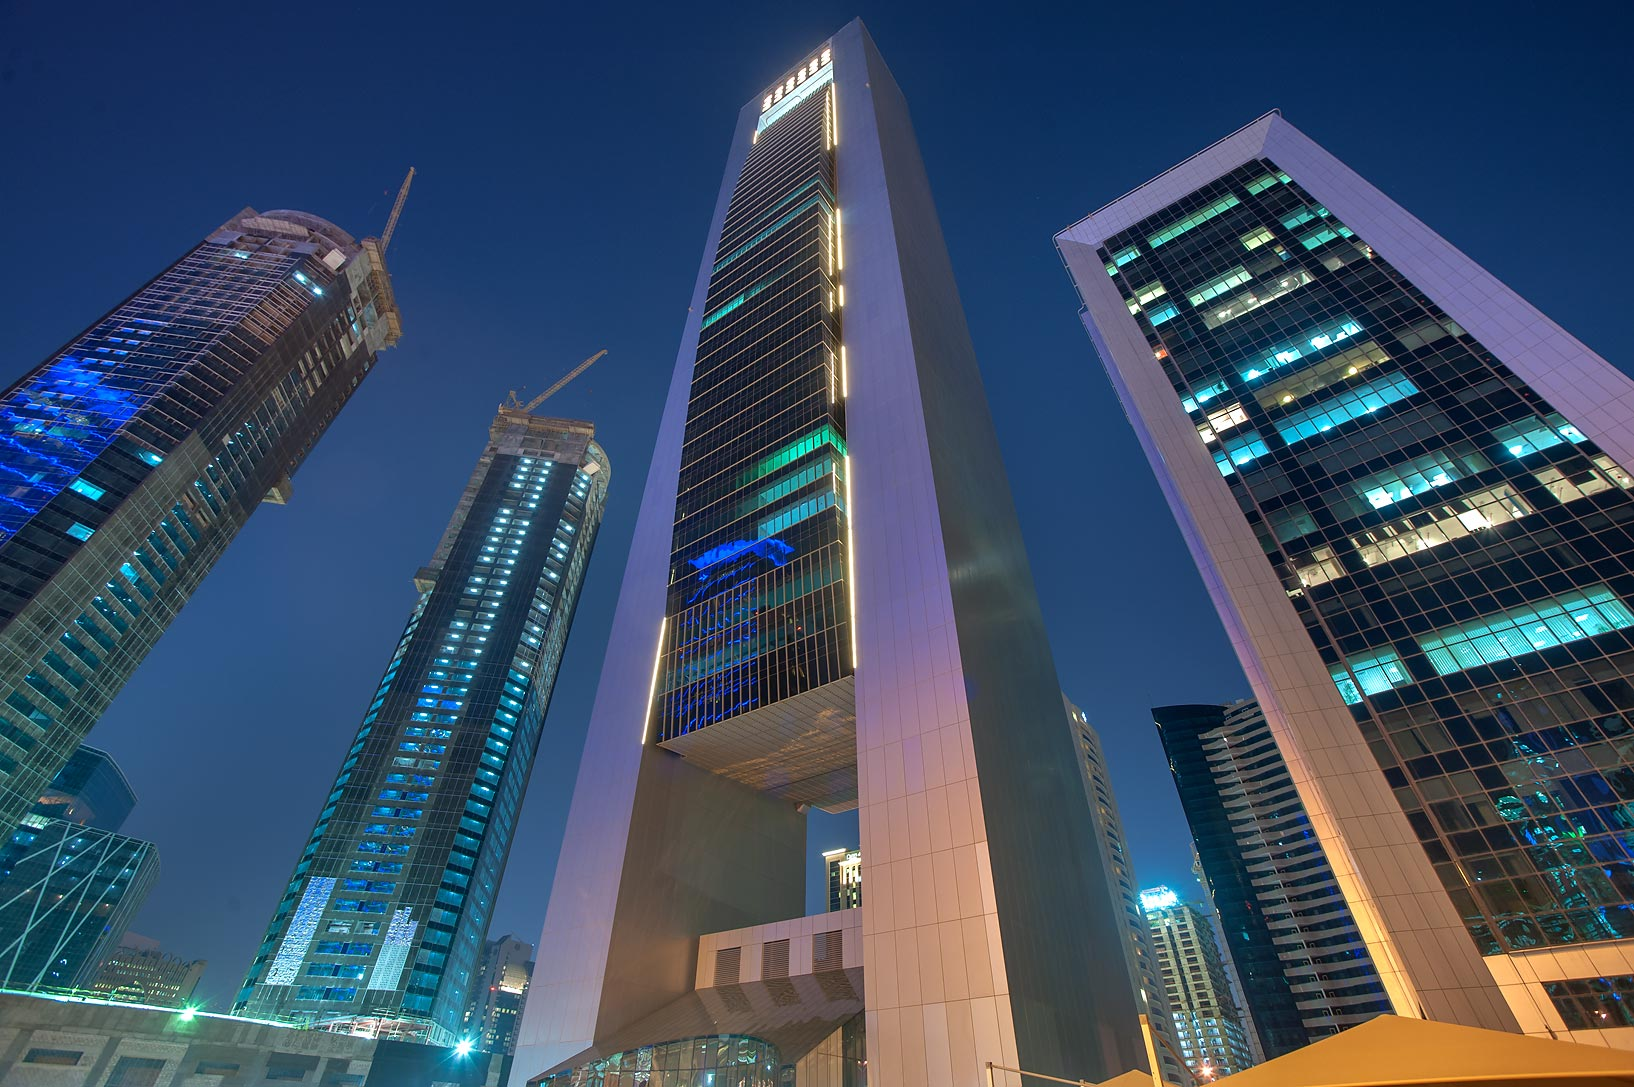 Faisal and Al Reem towers in West Bay. Doha, Qatar